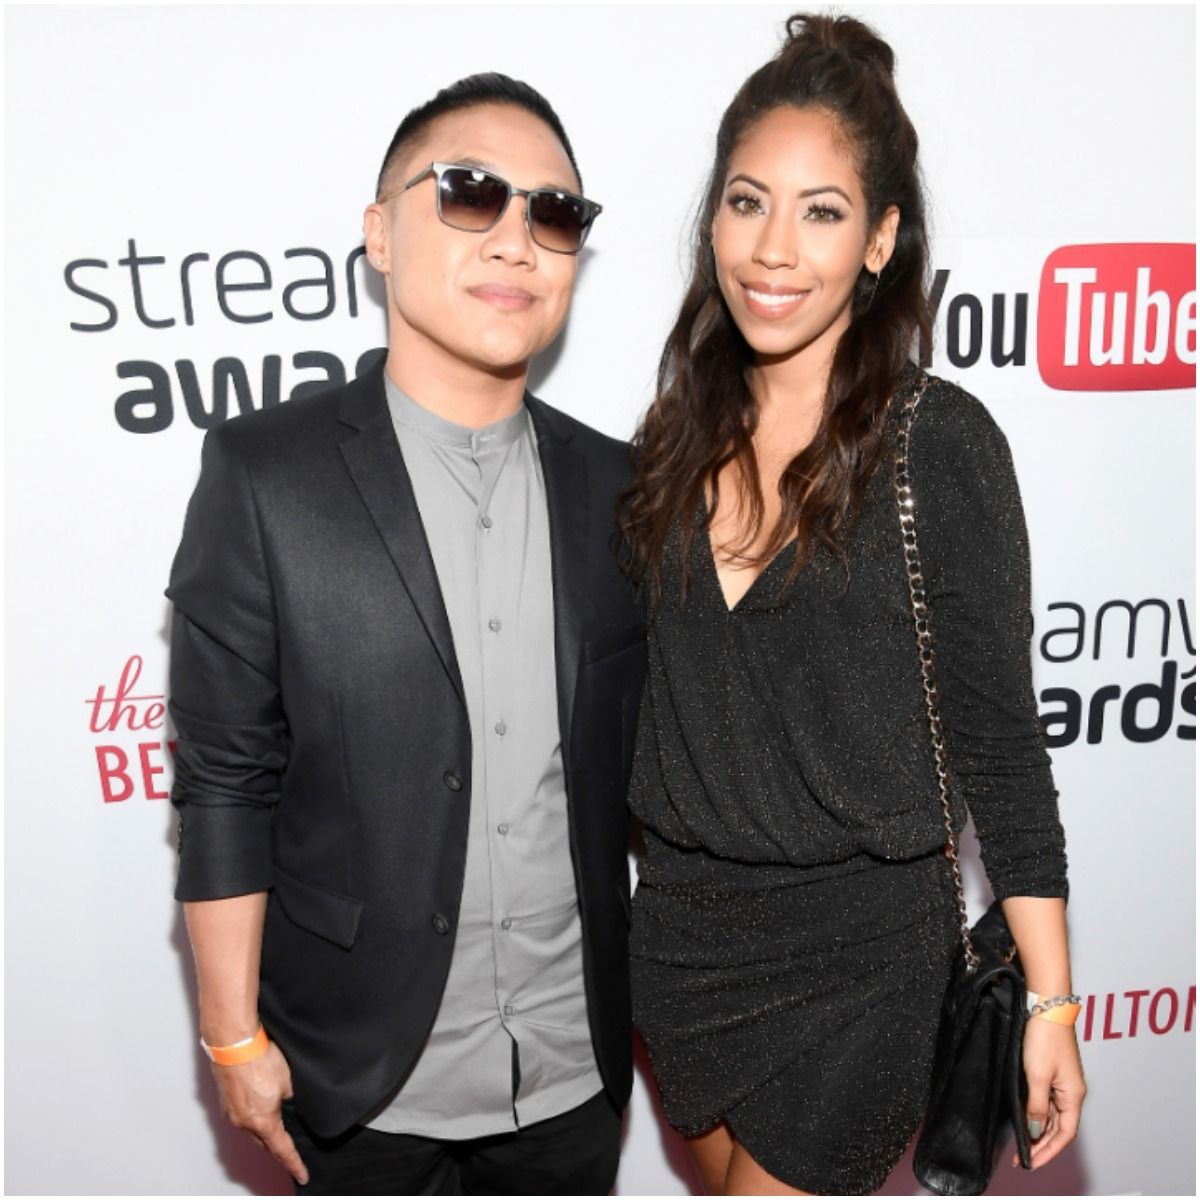 Timothy DeLaGhetto with wife Chia Habte